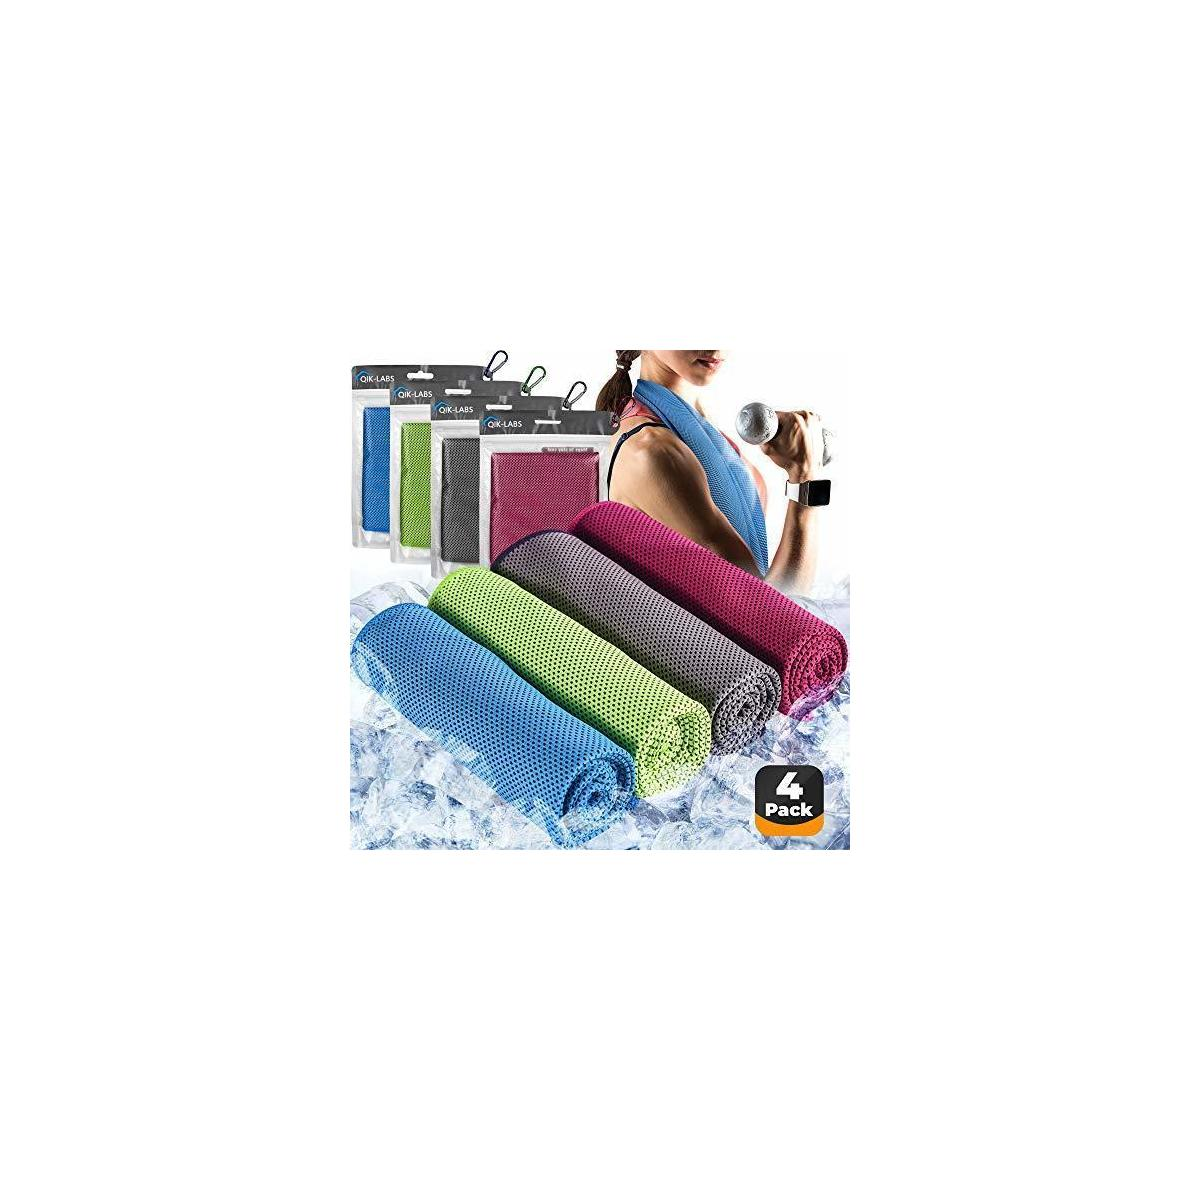 Cooling Towel [4 Pack]